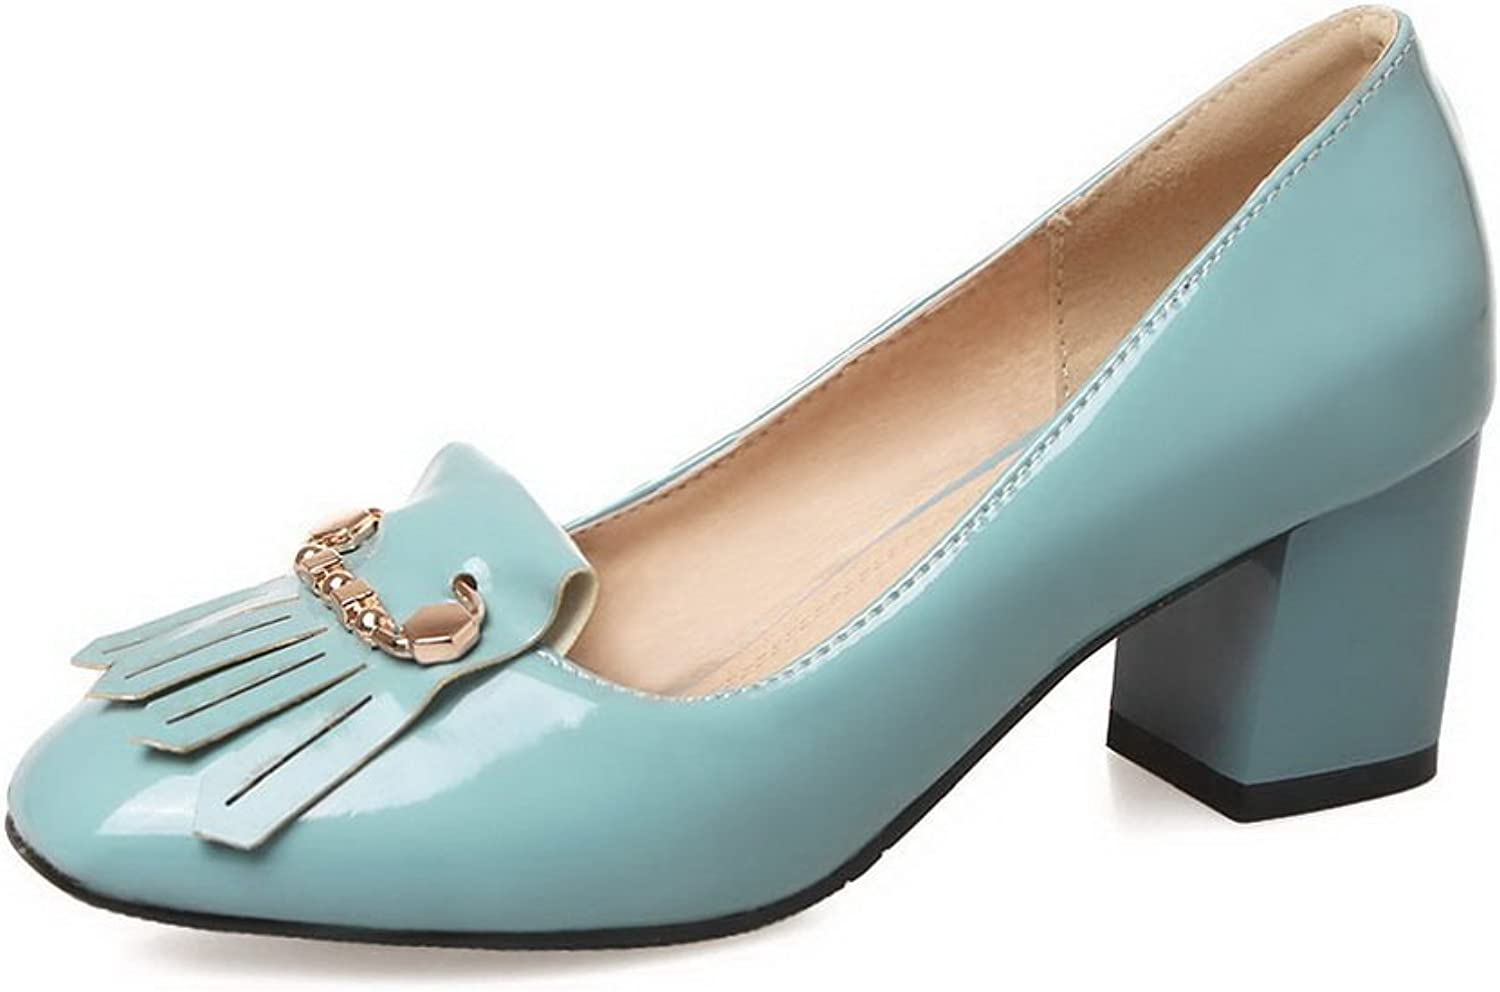 BalaMasa Womens Charms Tassels Chunky Heels Patent-Leather Pumps shoes